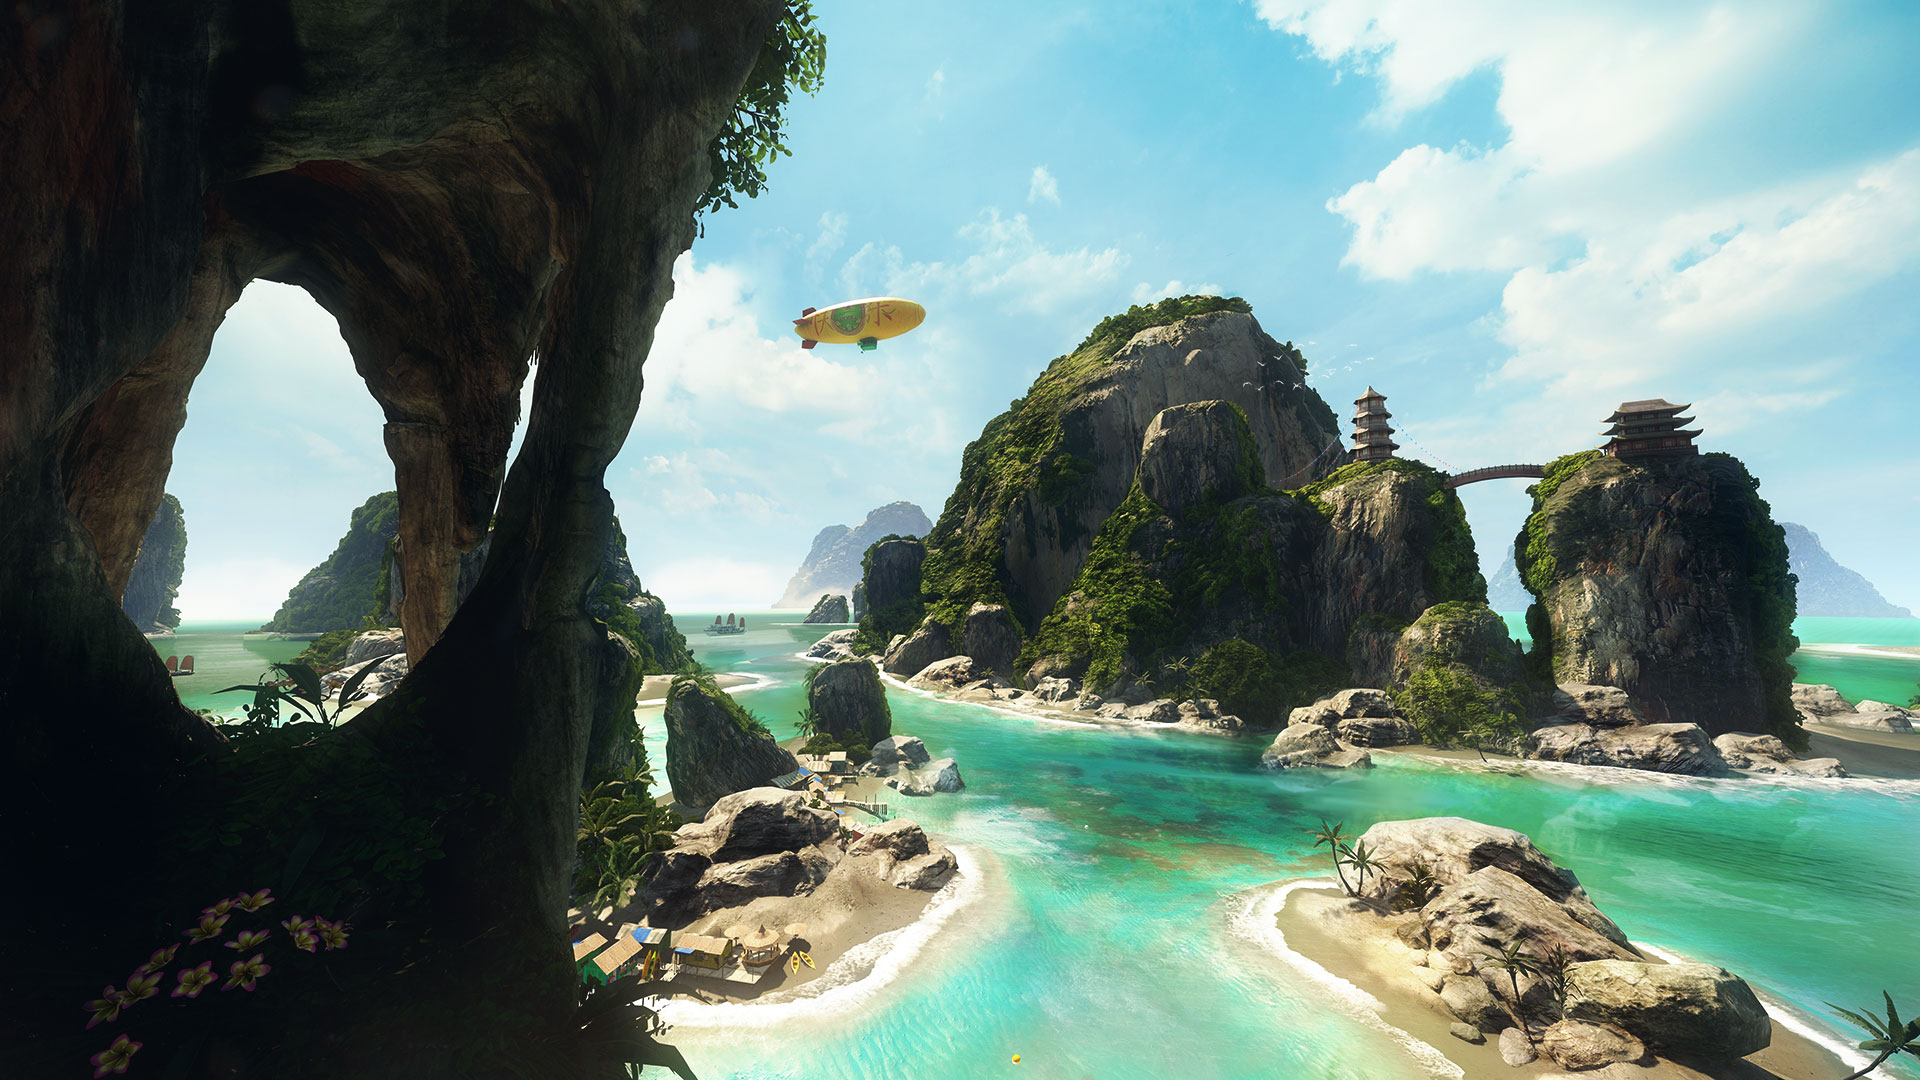 Wish You Were Here? How We Created an Asian Themed Rock Climbing Paradise